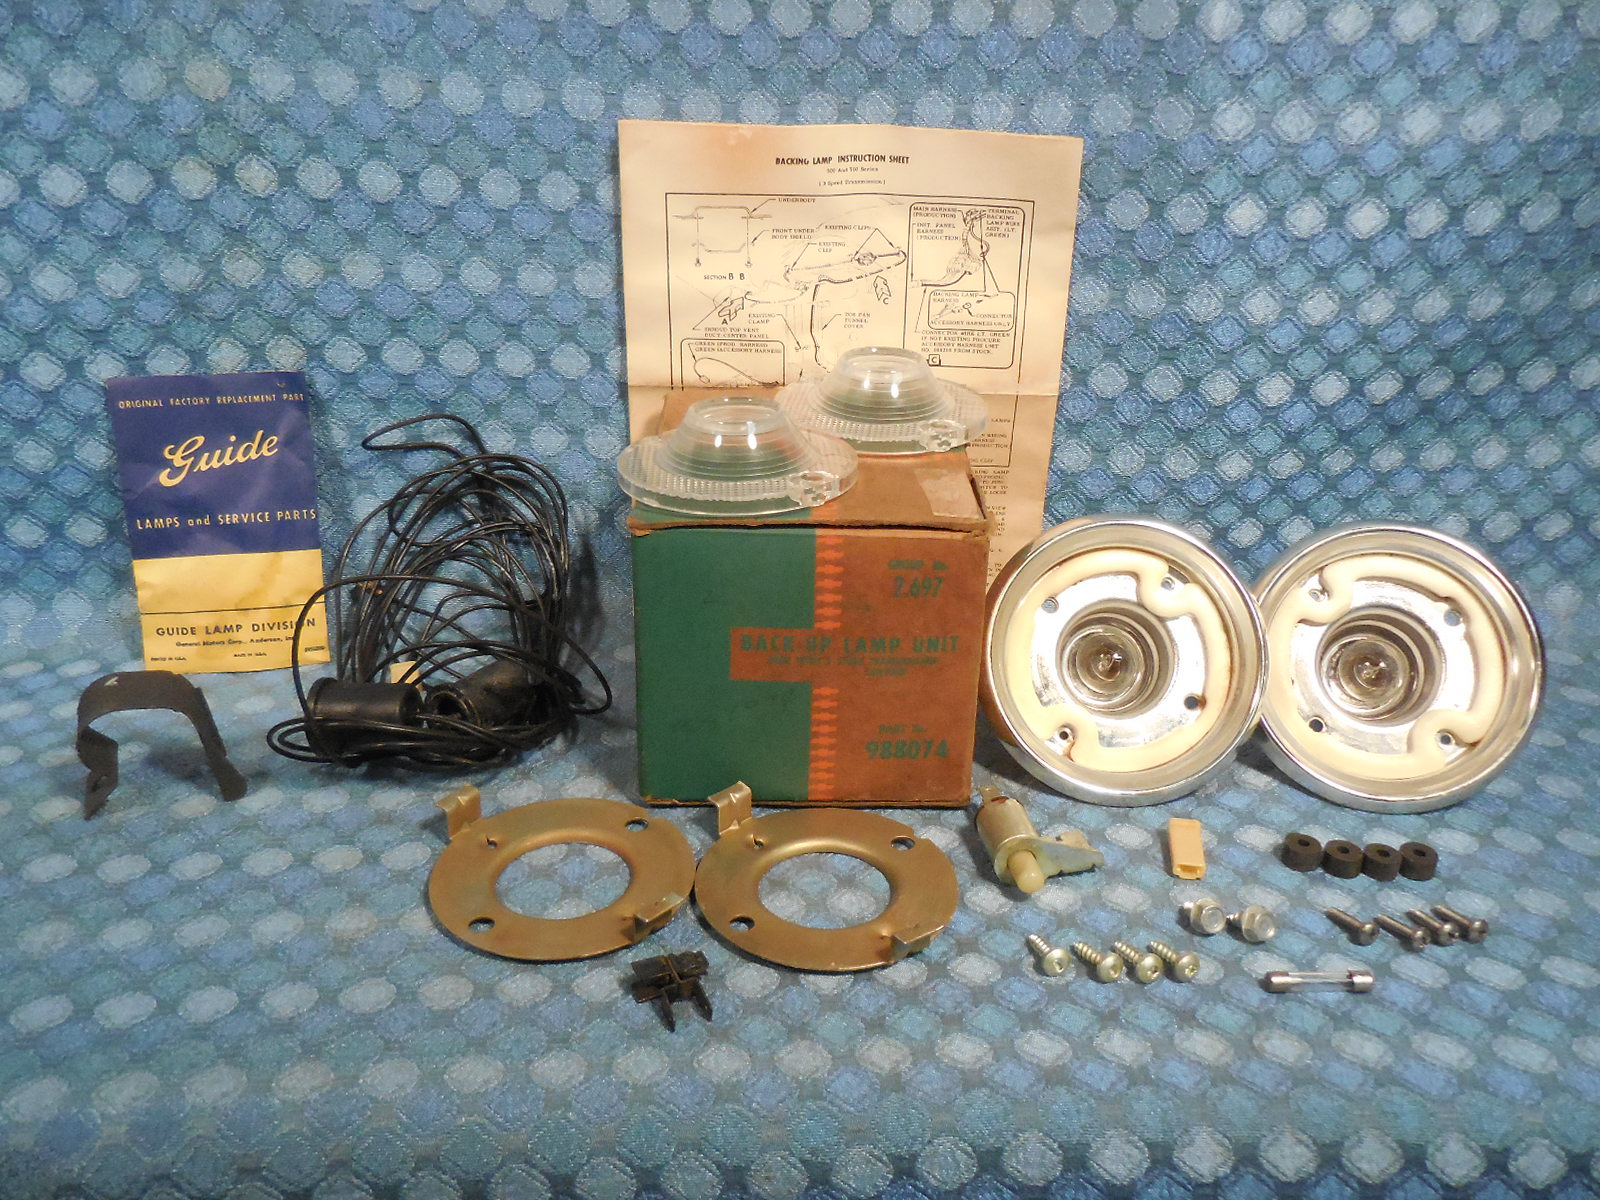 Other Parts Archives Page 2 Of Nos Texas Llc Antique Antler Lamp Wiring Kit 1960 Chevrolet Corvair Guide Back Up Light 985062 See Ad